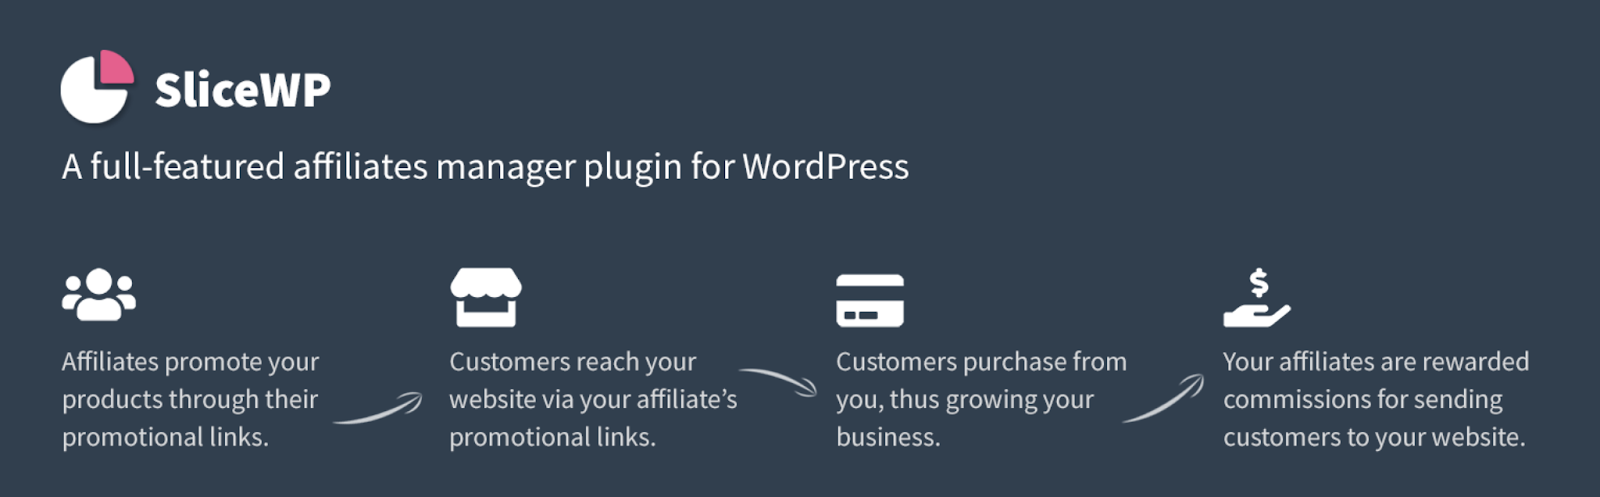 SliceWP affiliate manager plugin for WordPress